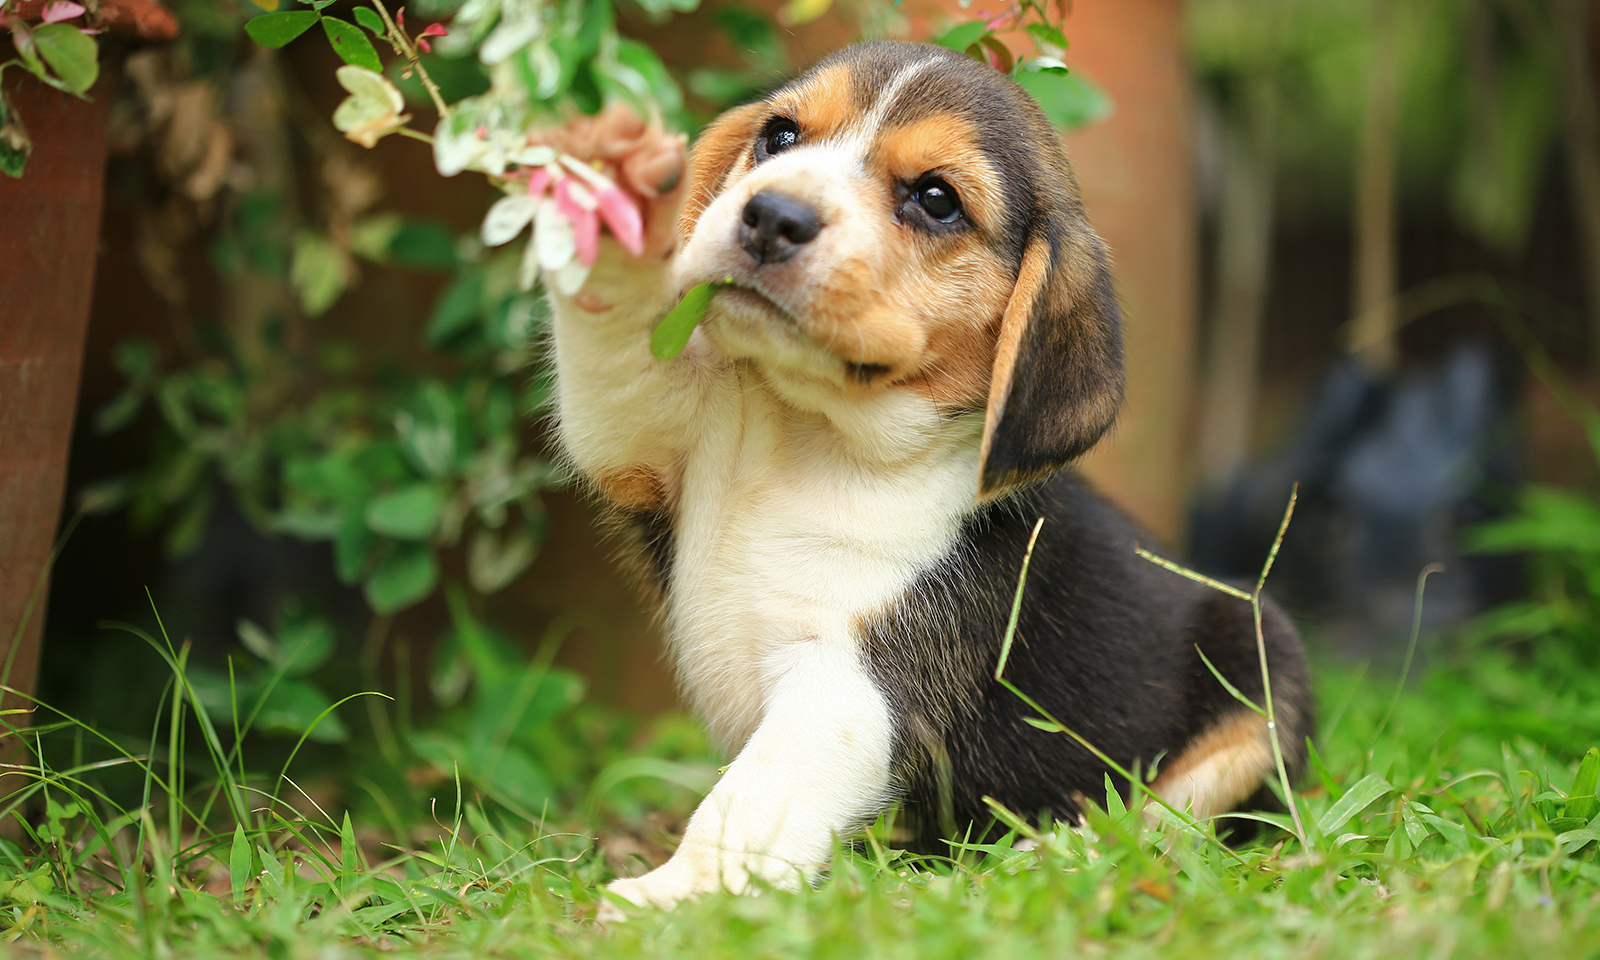 healthy-oils-to-add-to-your-dogs-diet-regimen-cute-puppy-sitting-in-grass